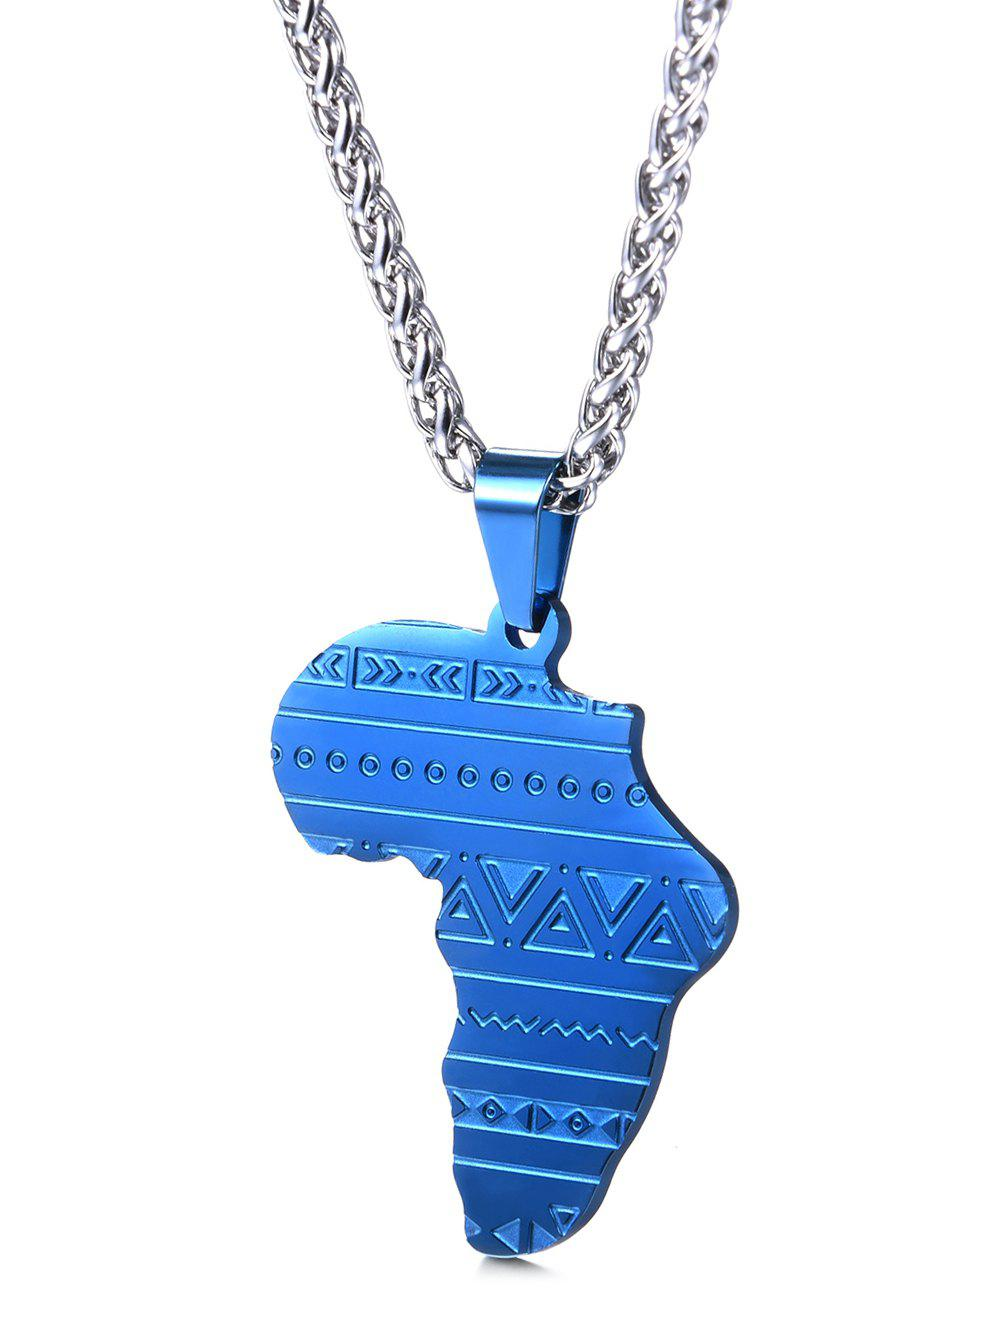 Shop Stainless Steel Map Engraved Pendant Necklace